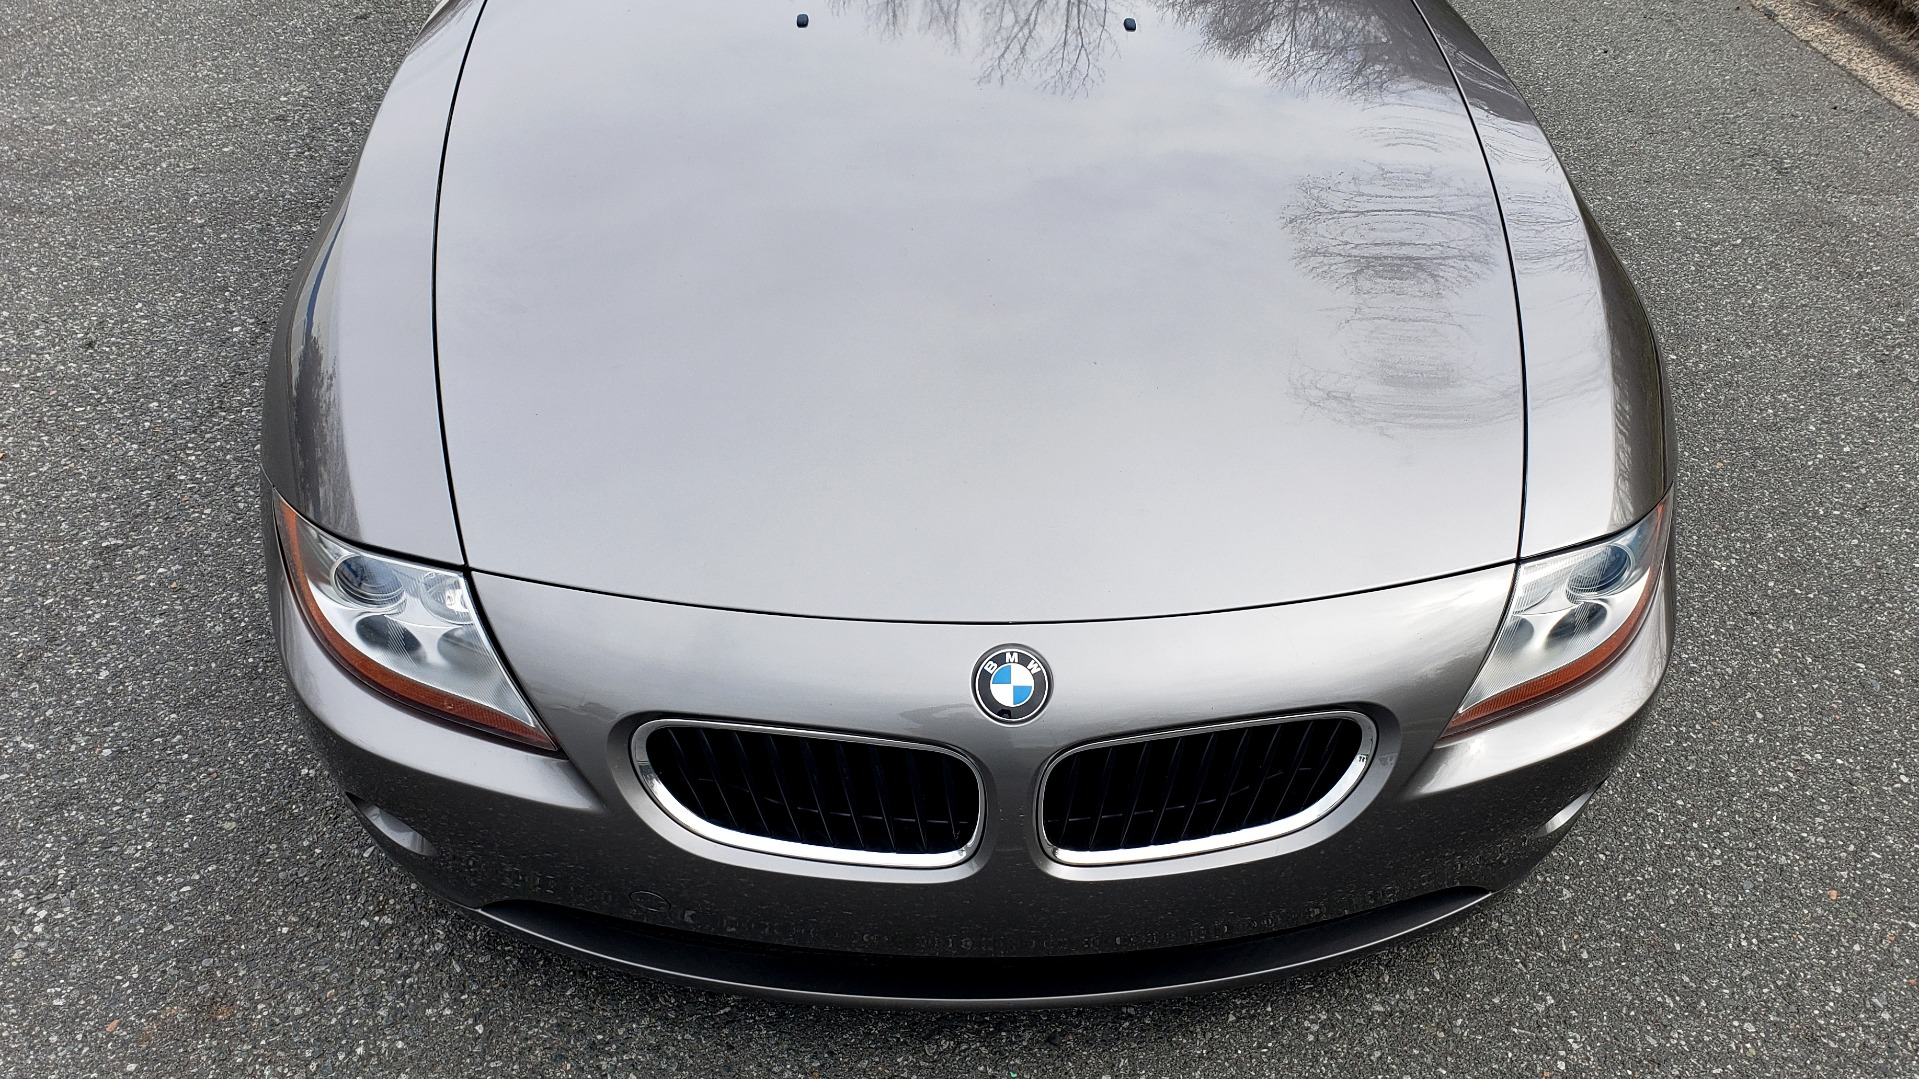 Used 2003 BMW Z4 3.0i ROADSTER / 6-SPD MAN / PREMIUM PKG / SPORT PKG / HTD STS for sale Sold at Formula Imports in Charlotte NC 28227 16